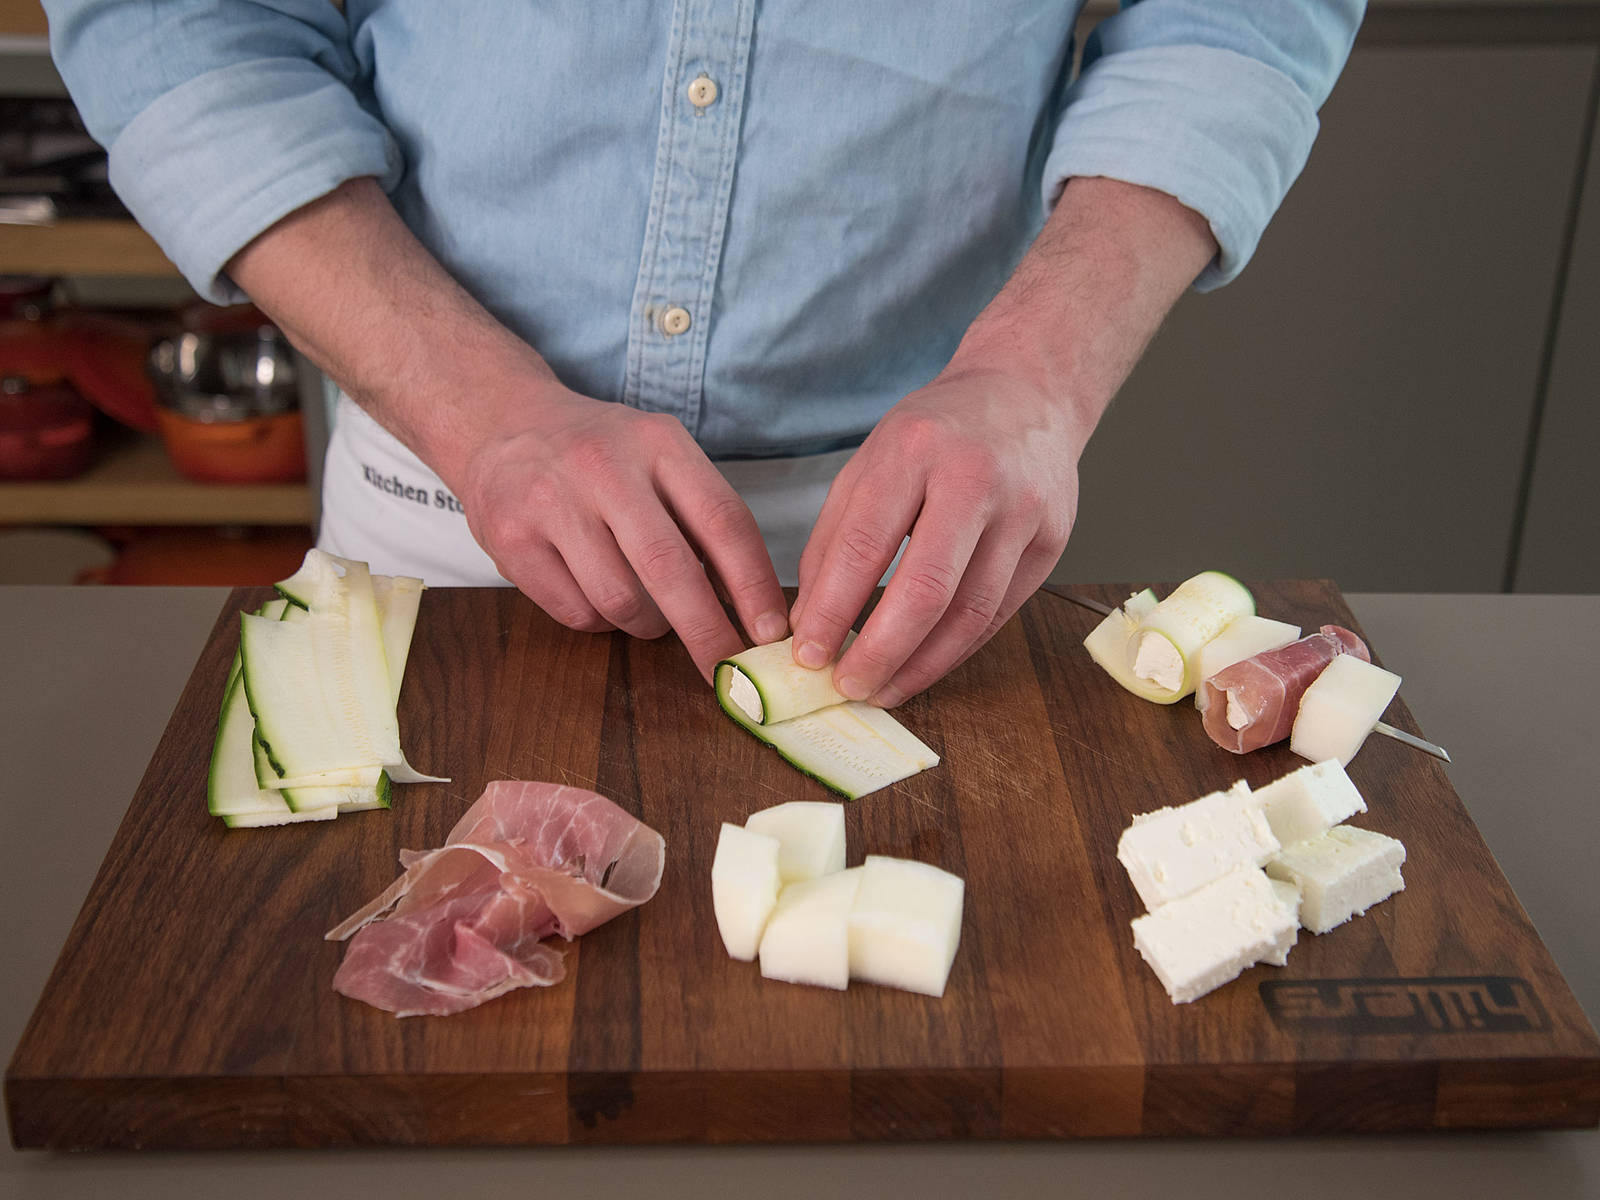 Roll half of the feta cubes in zucchini slices, using one feta cube per slice of zucchini. Roll the remaining feta cubes in slices of prosciutto.